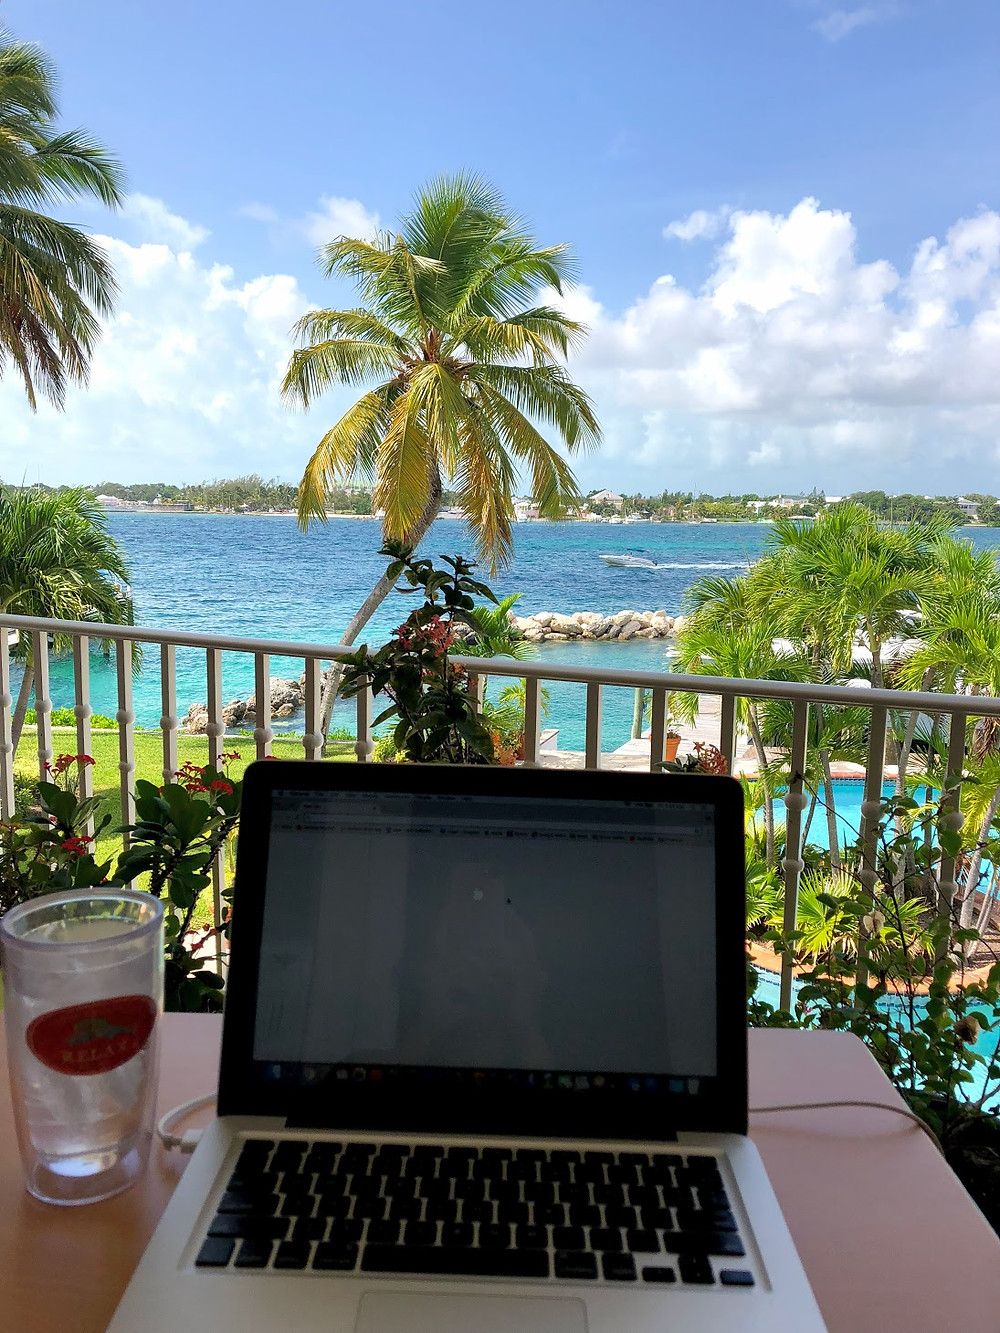 laptop and drink tumbler on a table at a balcony overlooking a palm tree and the ocean